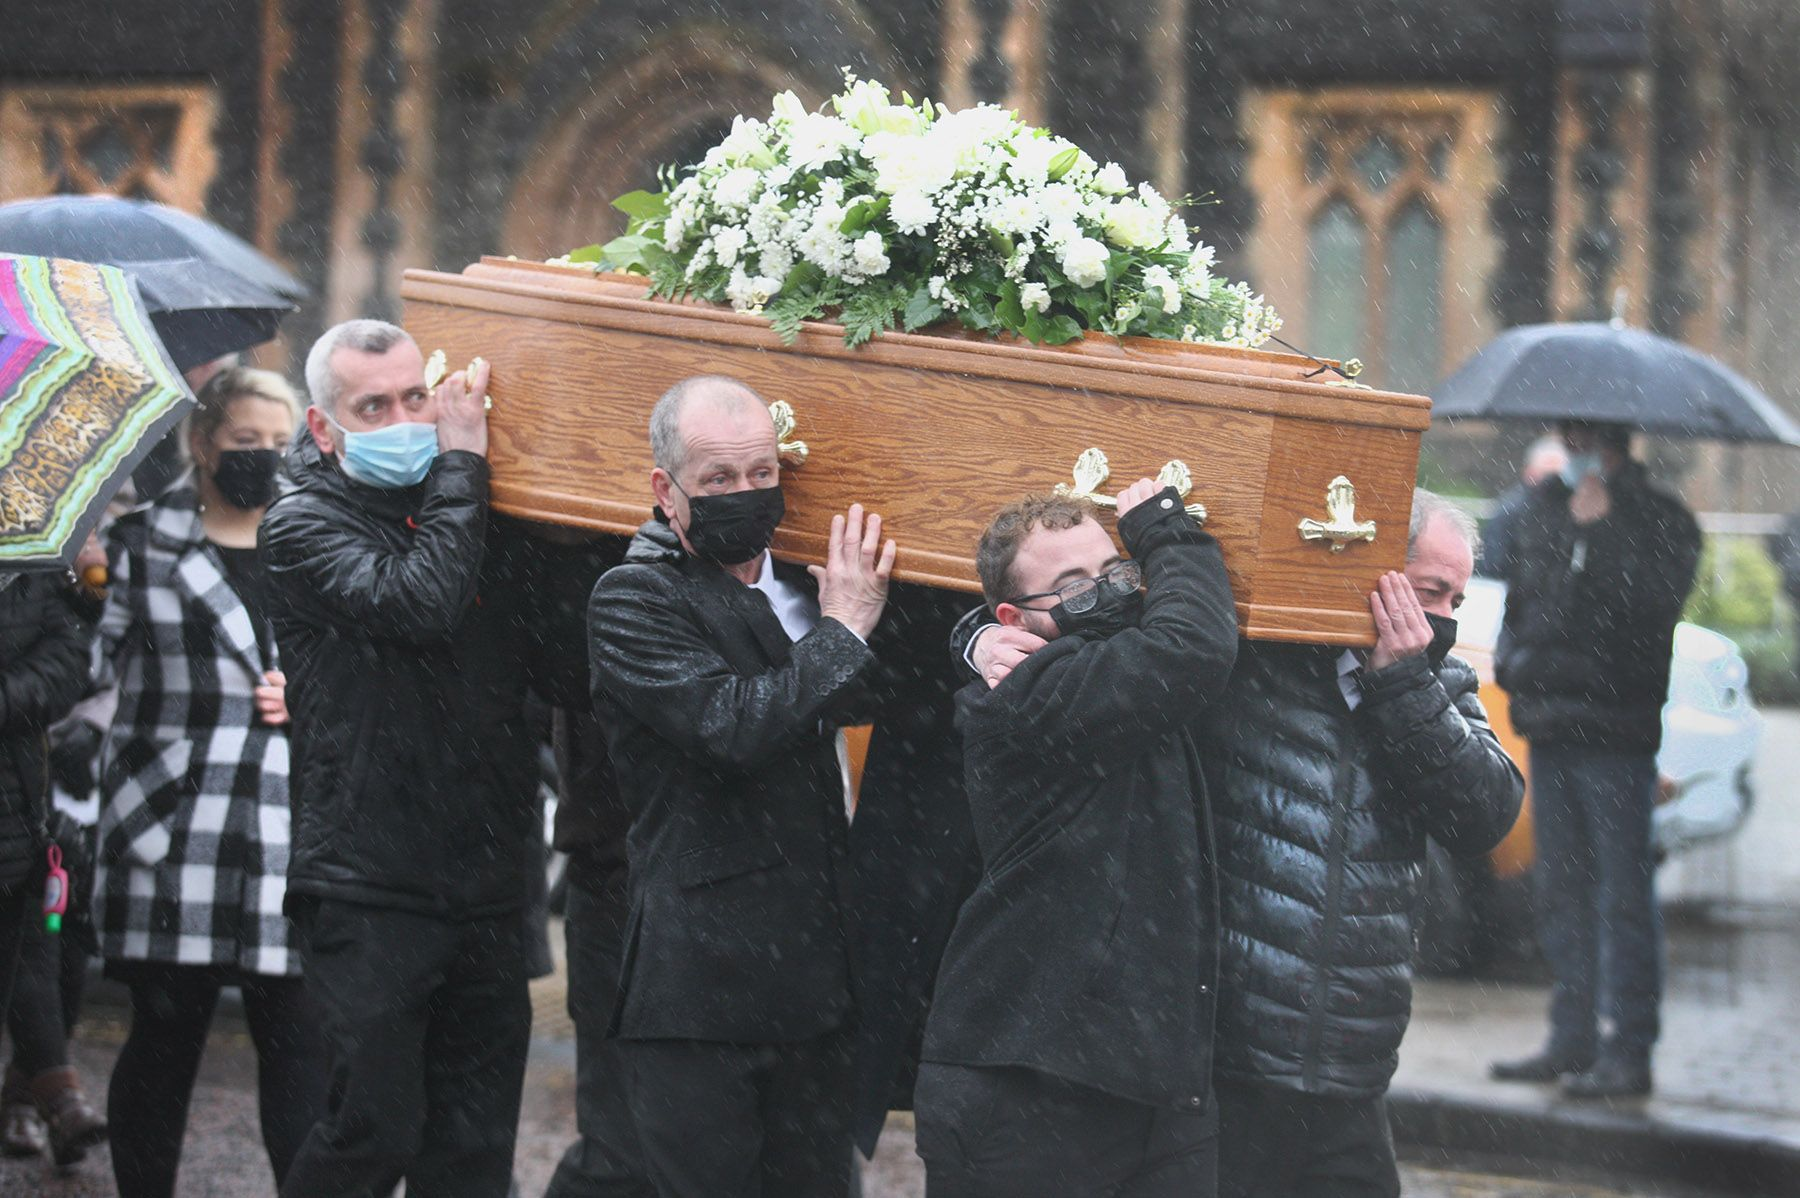 FINAL JOURNEY: The funeral of Lucy McIlhatton was held at St Teresa\'s Church on the Glen Road this morning